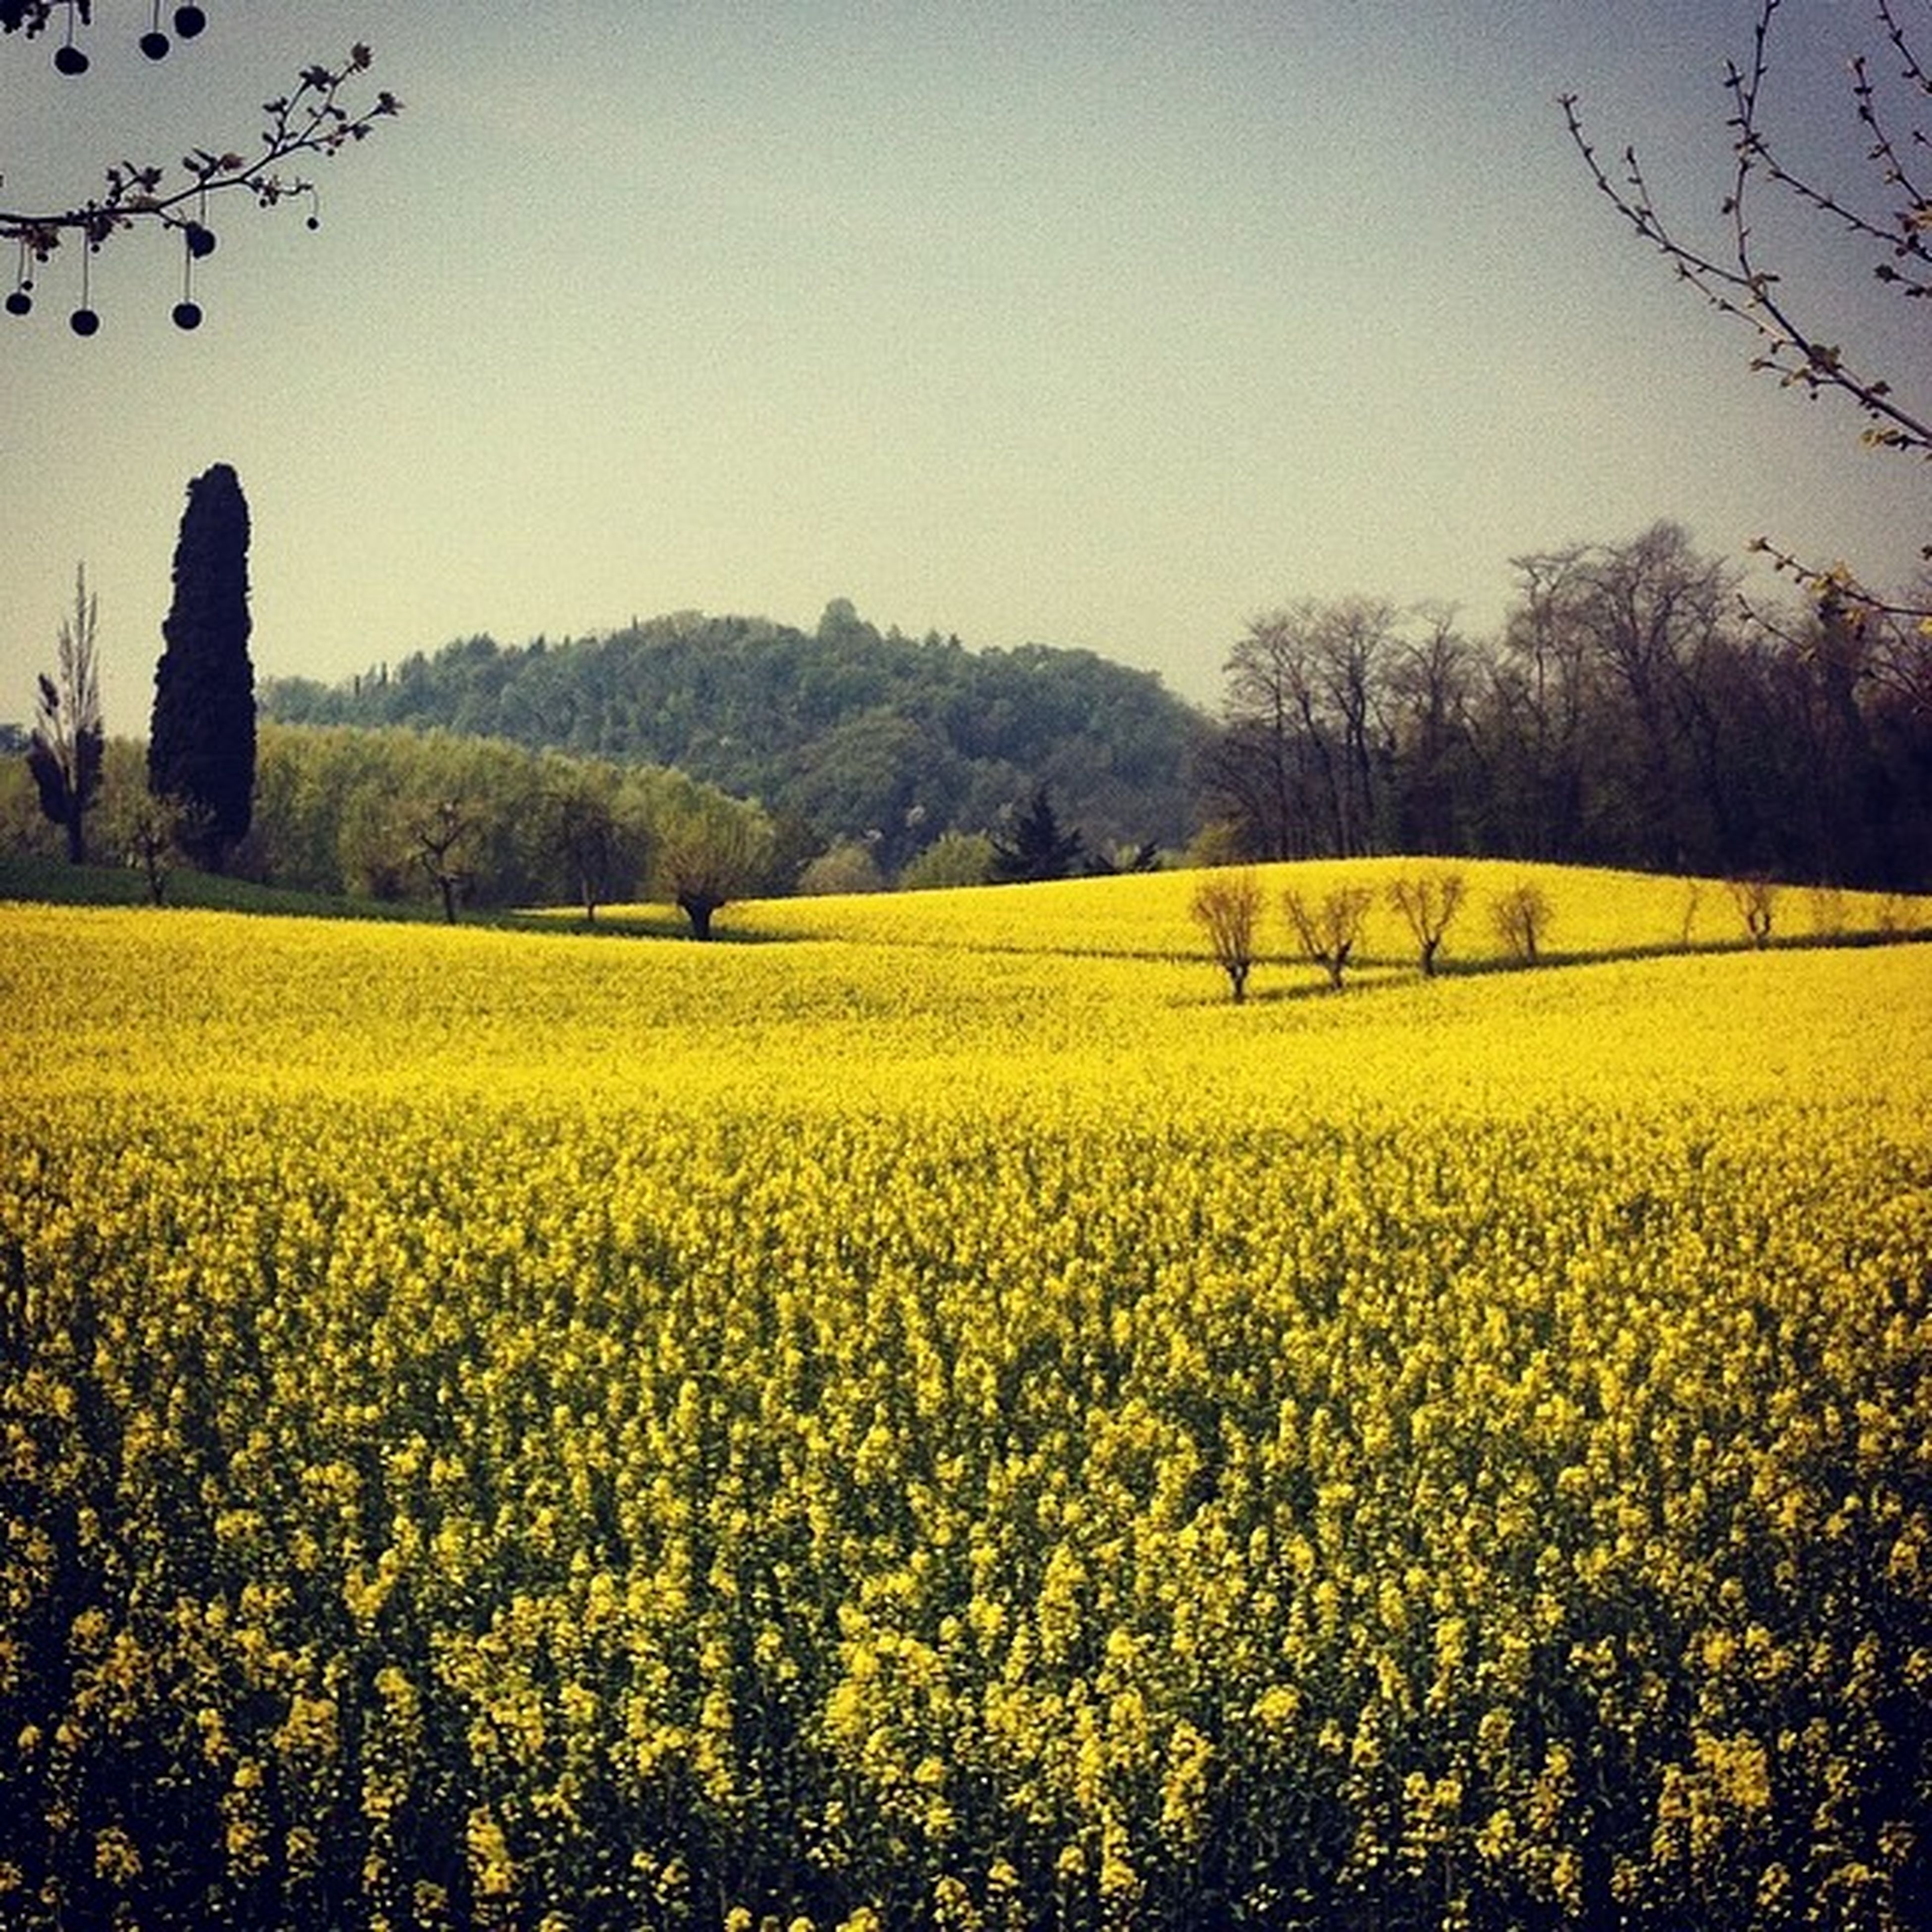 yellow, agriculture, field, rural scene, clear sky, beauty in nature, landscape, growth, tranquil scene, nature, tranquility, flower, farm, tree, scenics, crop, oilseed rape, abundance, cultivated land, sky